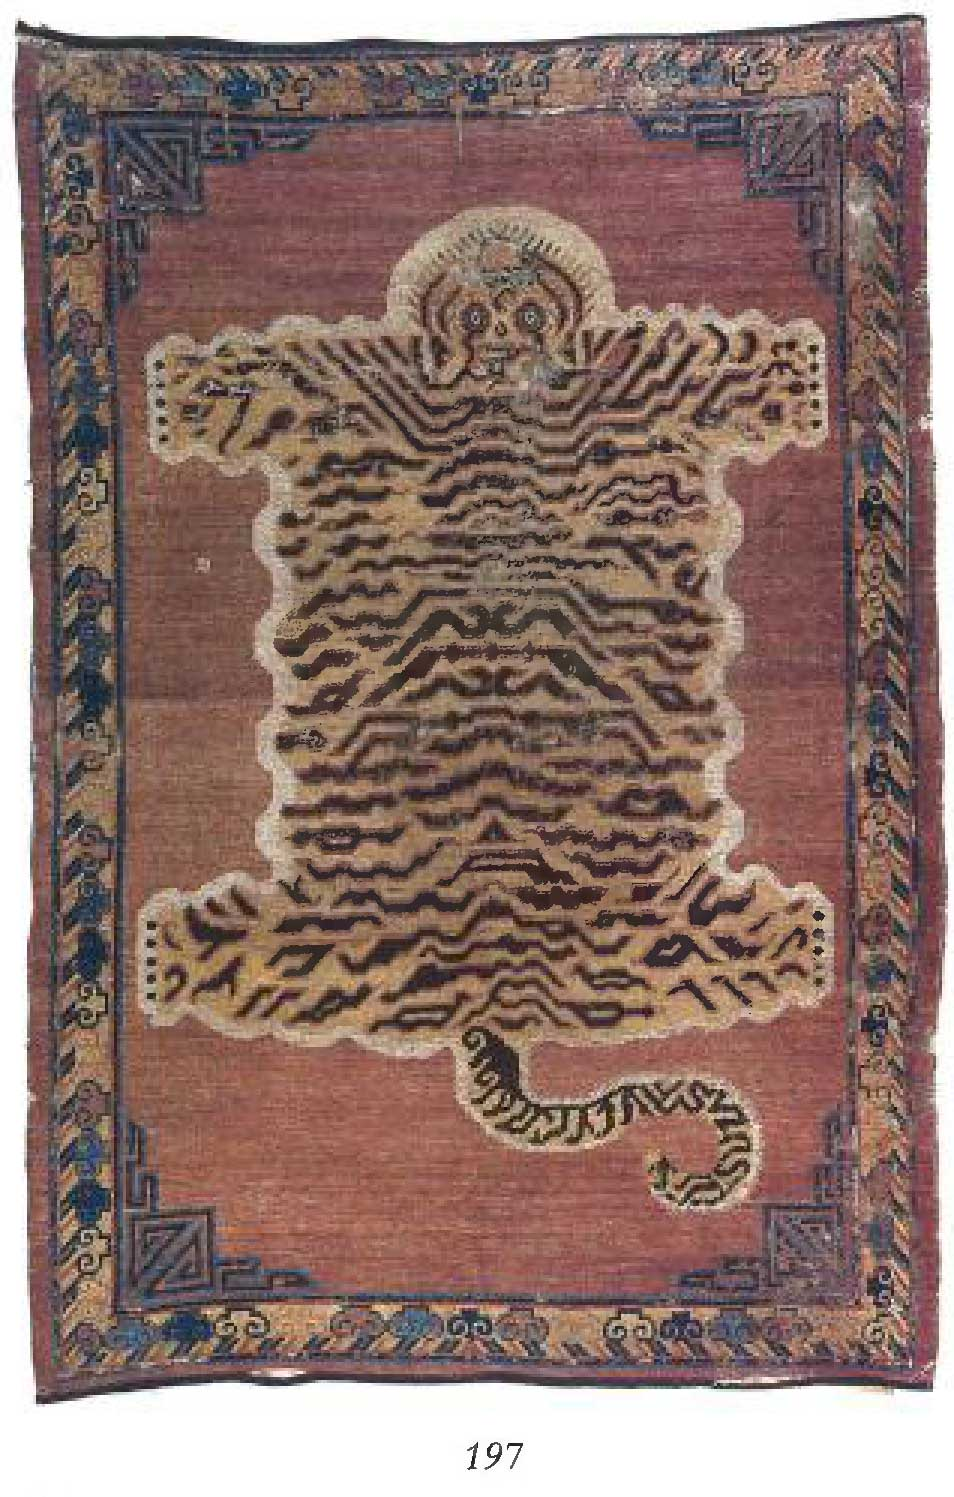 A Khotan Tiger Rug - Lot 197 - Christie's Bernheimer Auction | Please excuse the image quality. | Image courtesy of Christie's